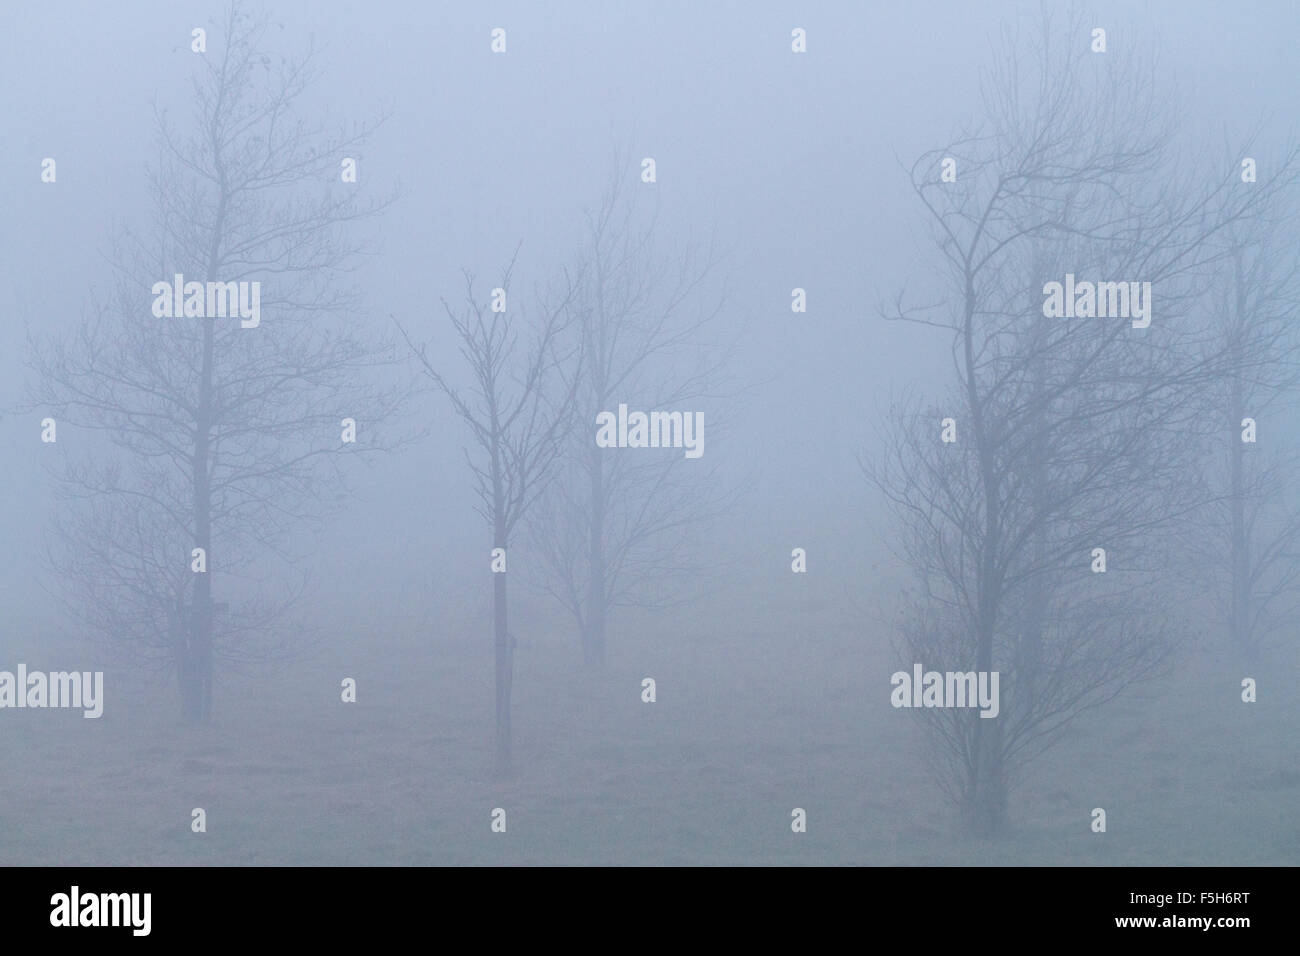 Sparse winter trees in foggy weather - landscape orientation - Stock Image